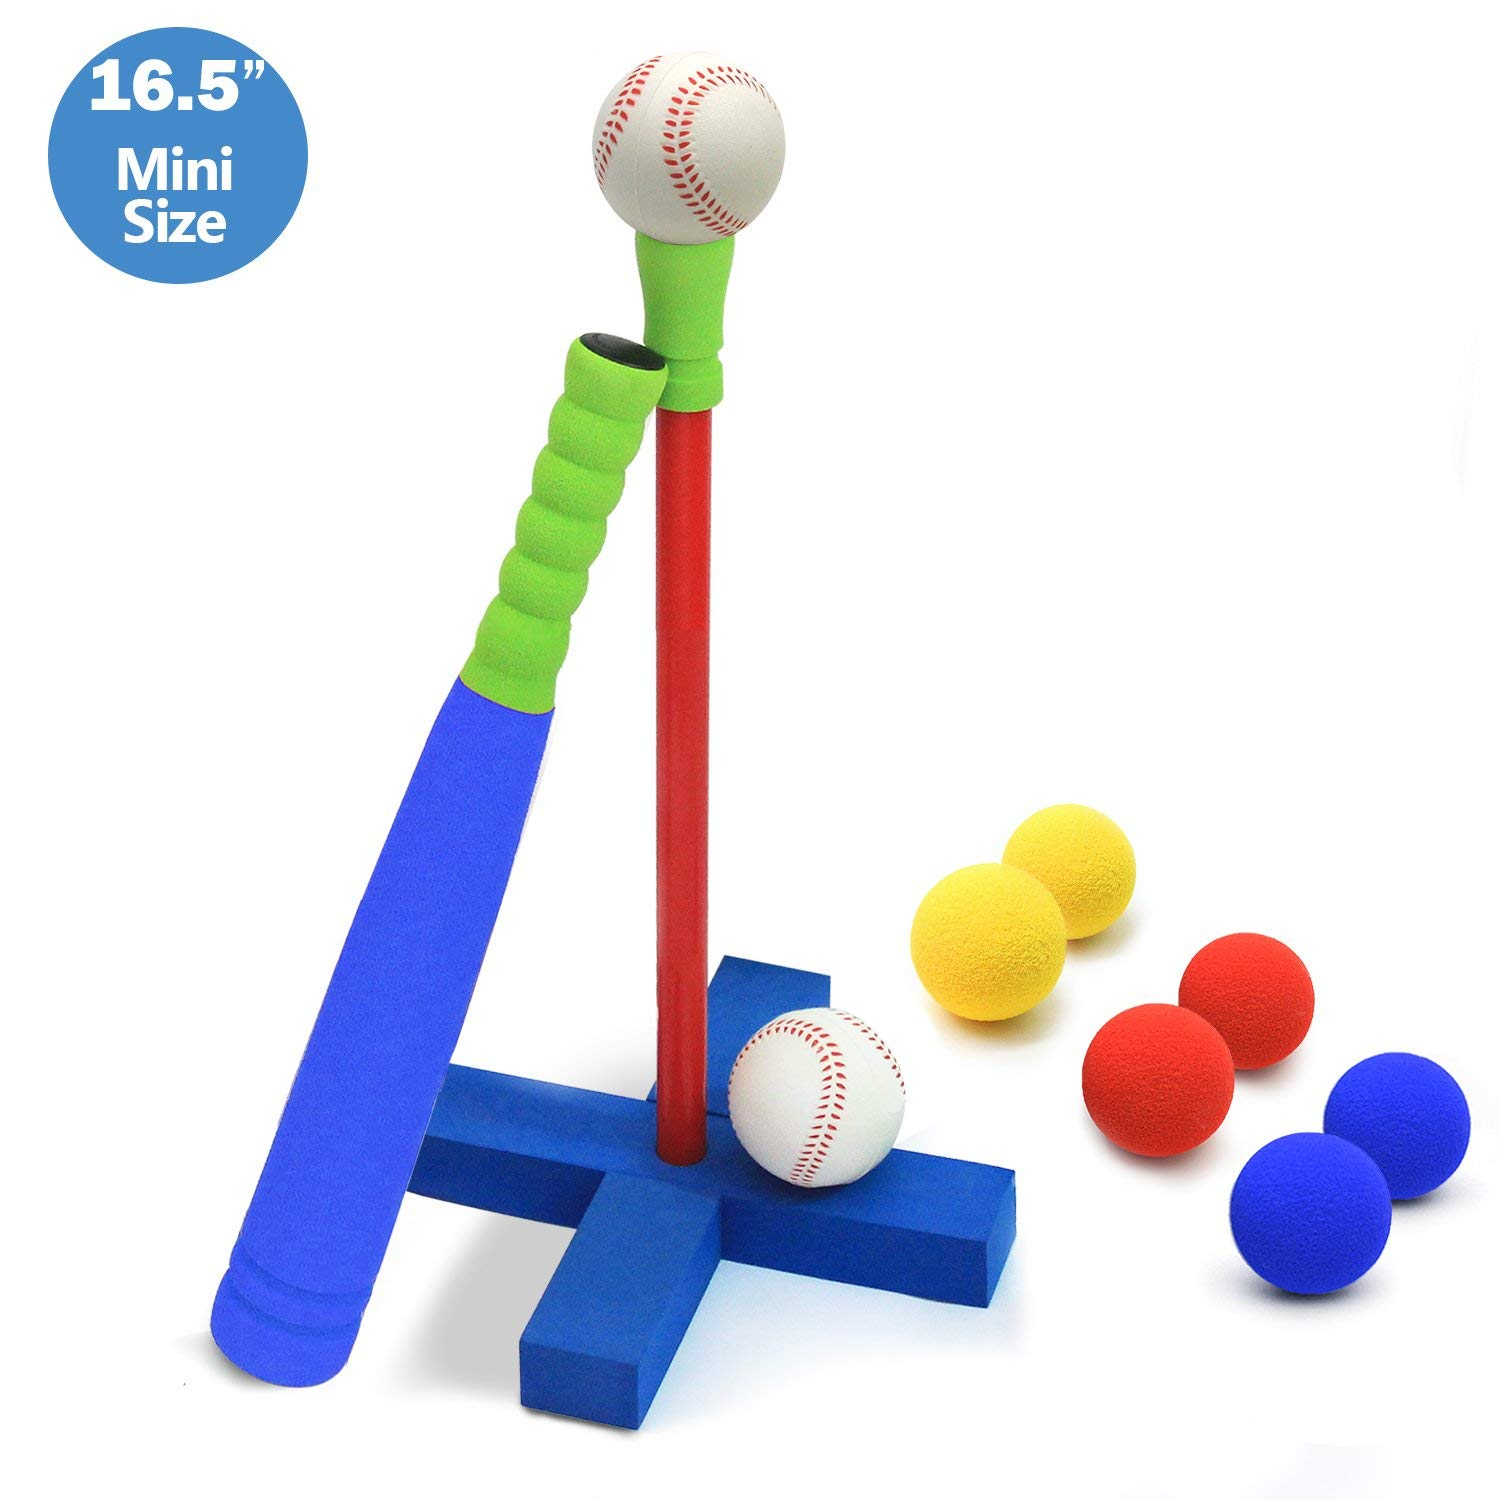 Bat and ball set toy activity for kids